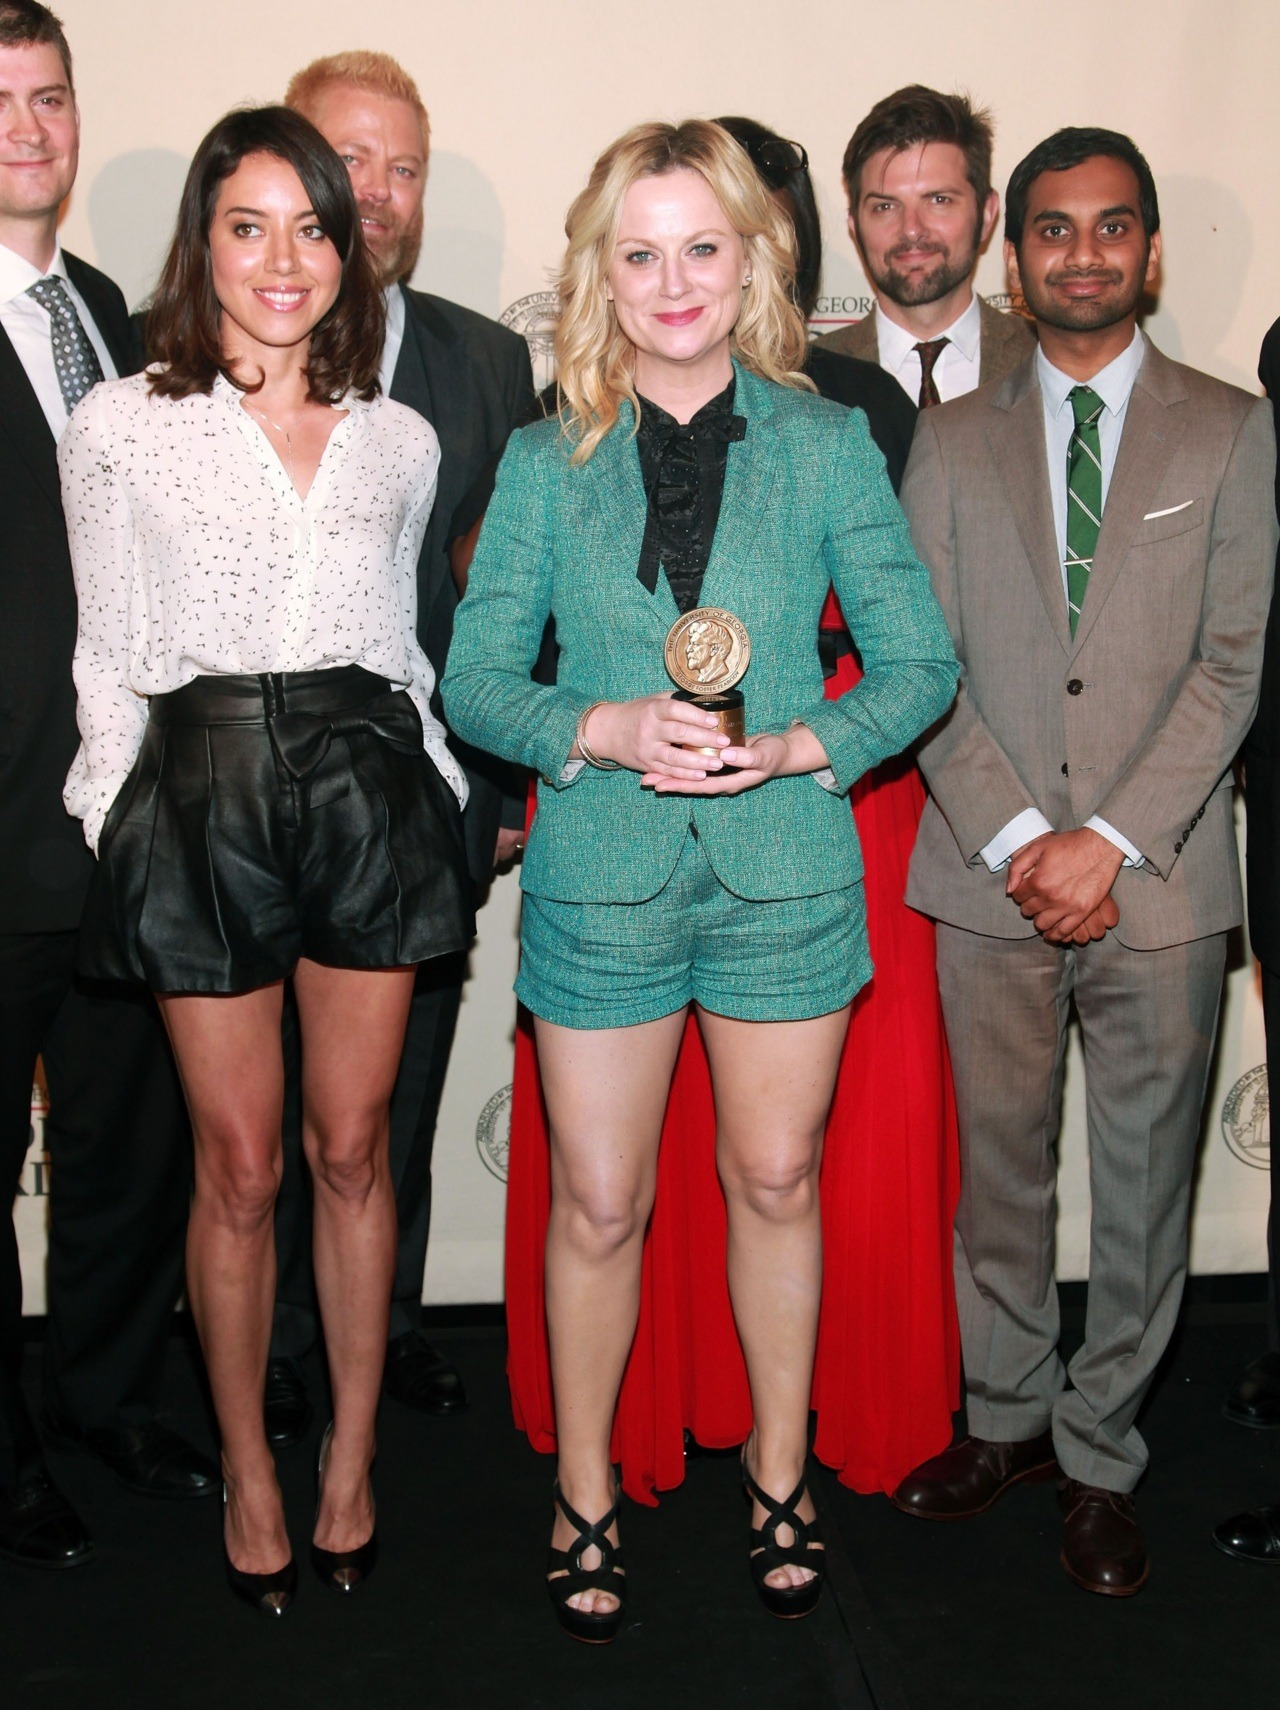 Aubrey Plaza, Nick Offerman, Amy Poehler, Adam Scott and Aziz Ansari at the Peabody Awards in NYC, May 21st